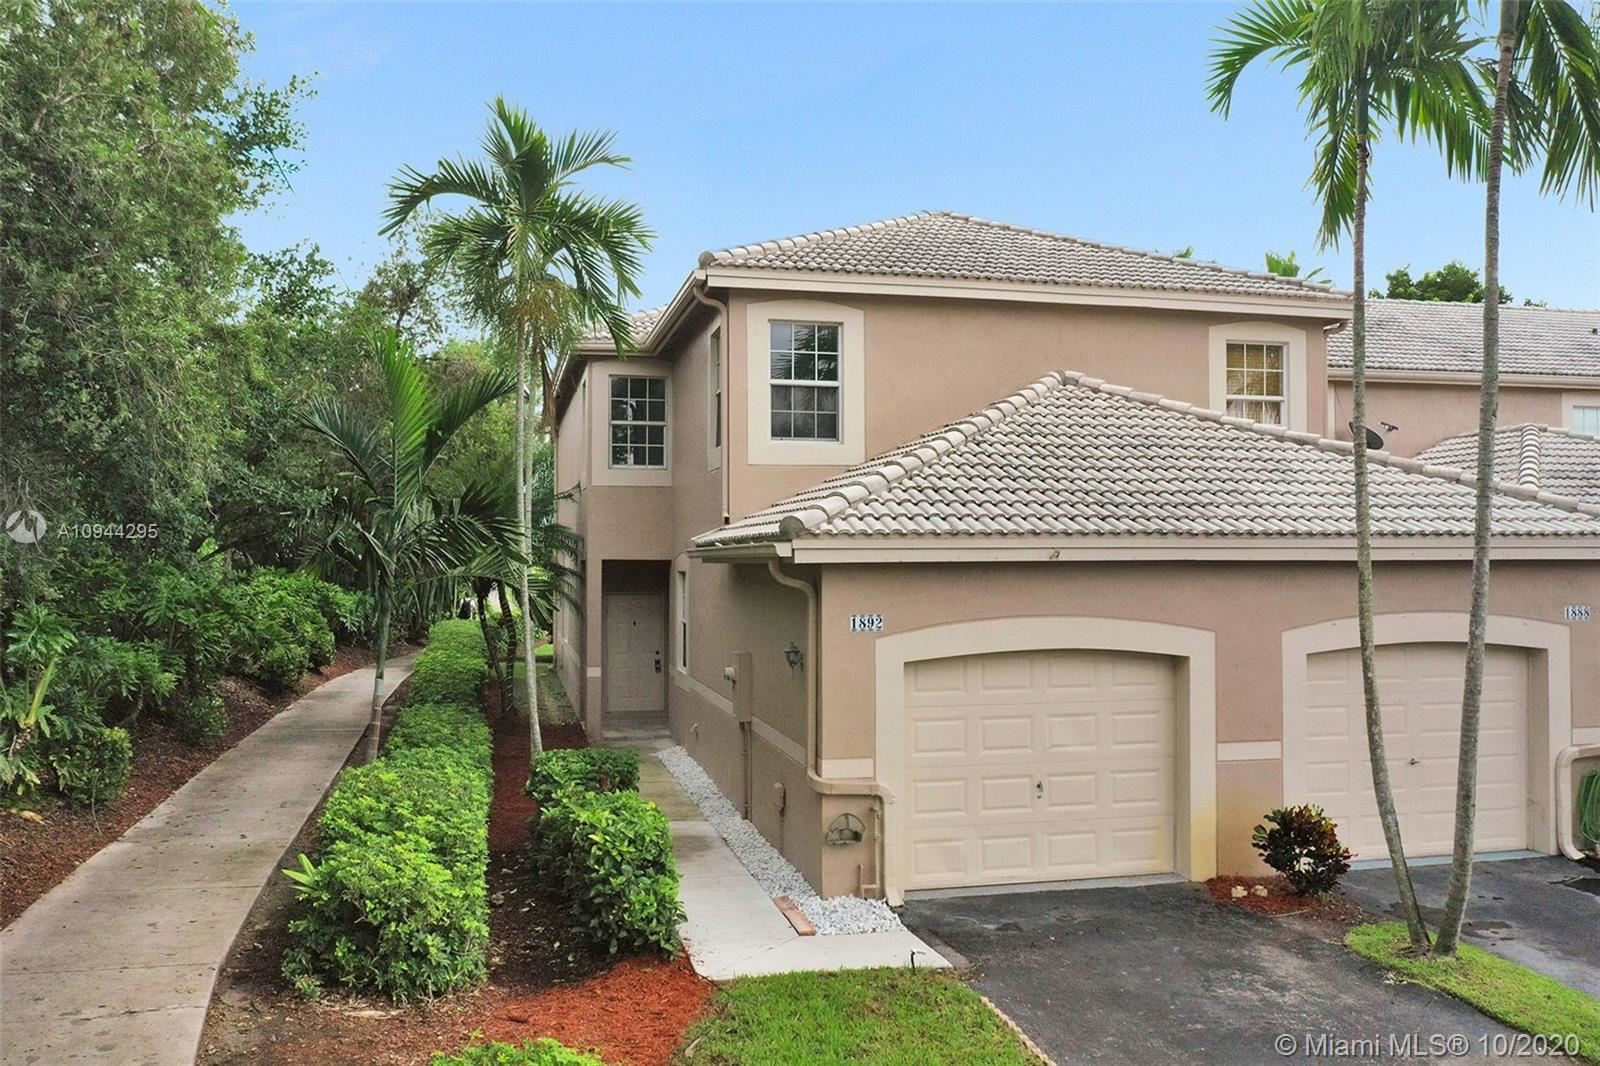 1892 Salerno Cir, Weston, FL 33327 - #: A10944295